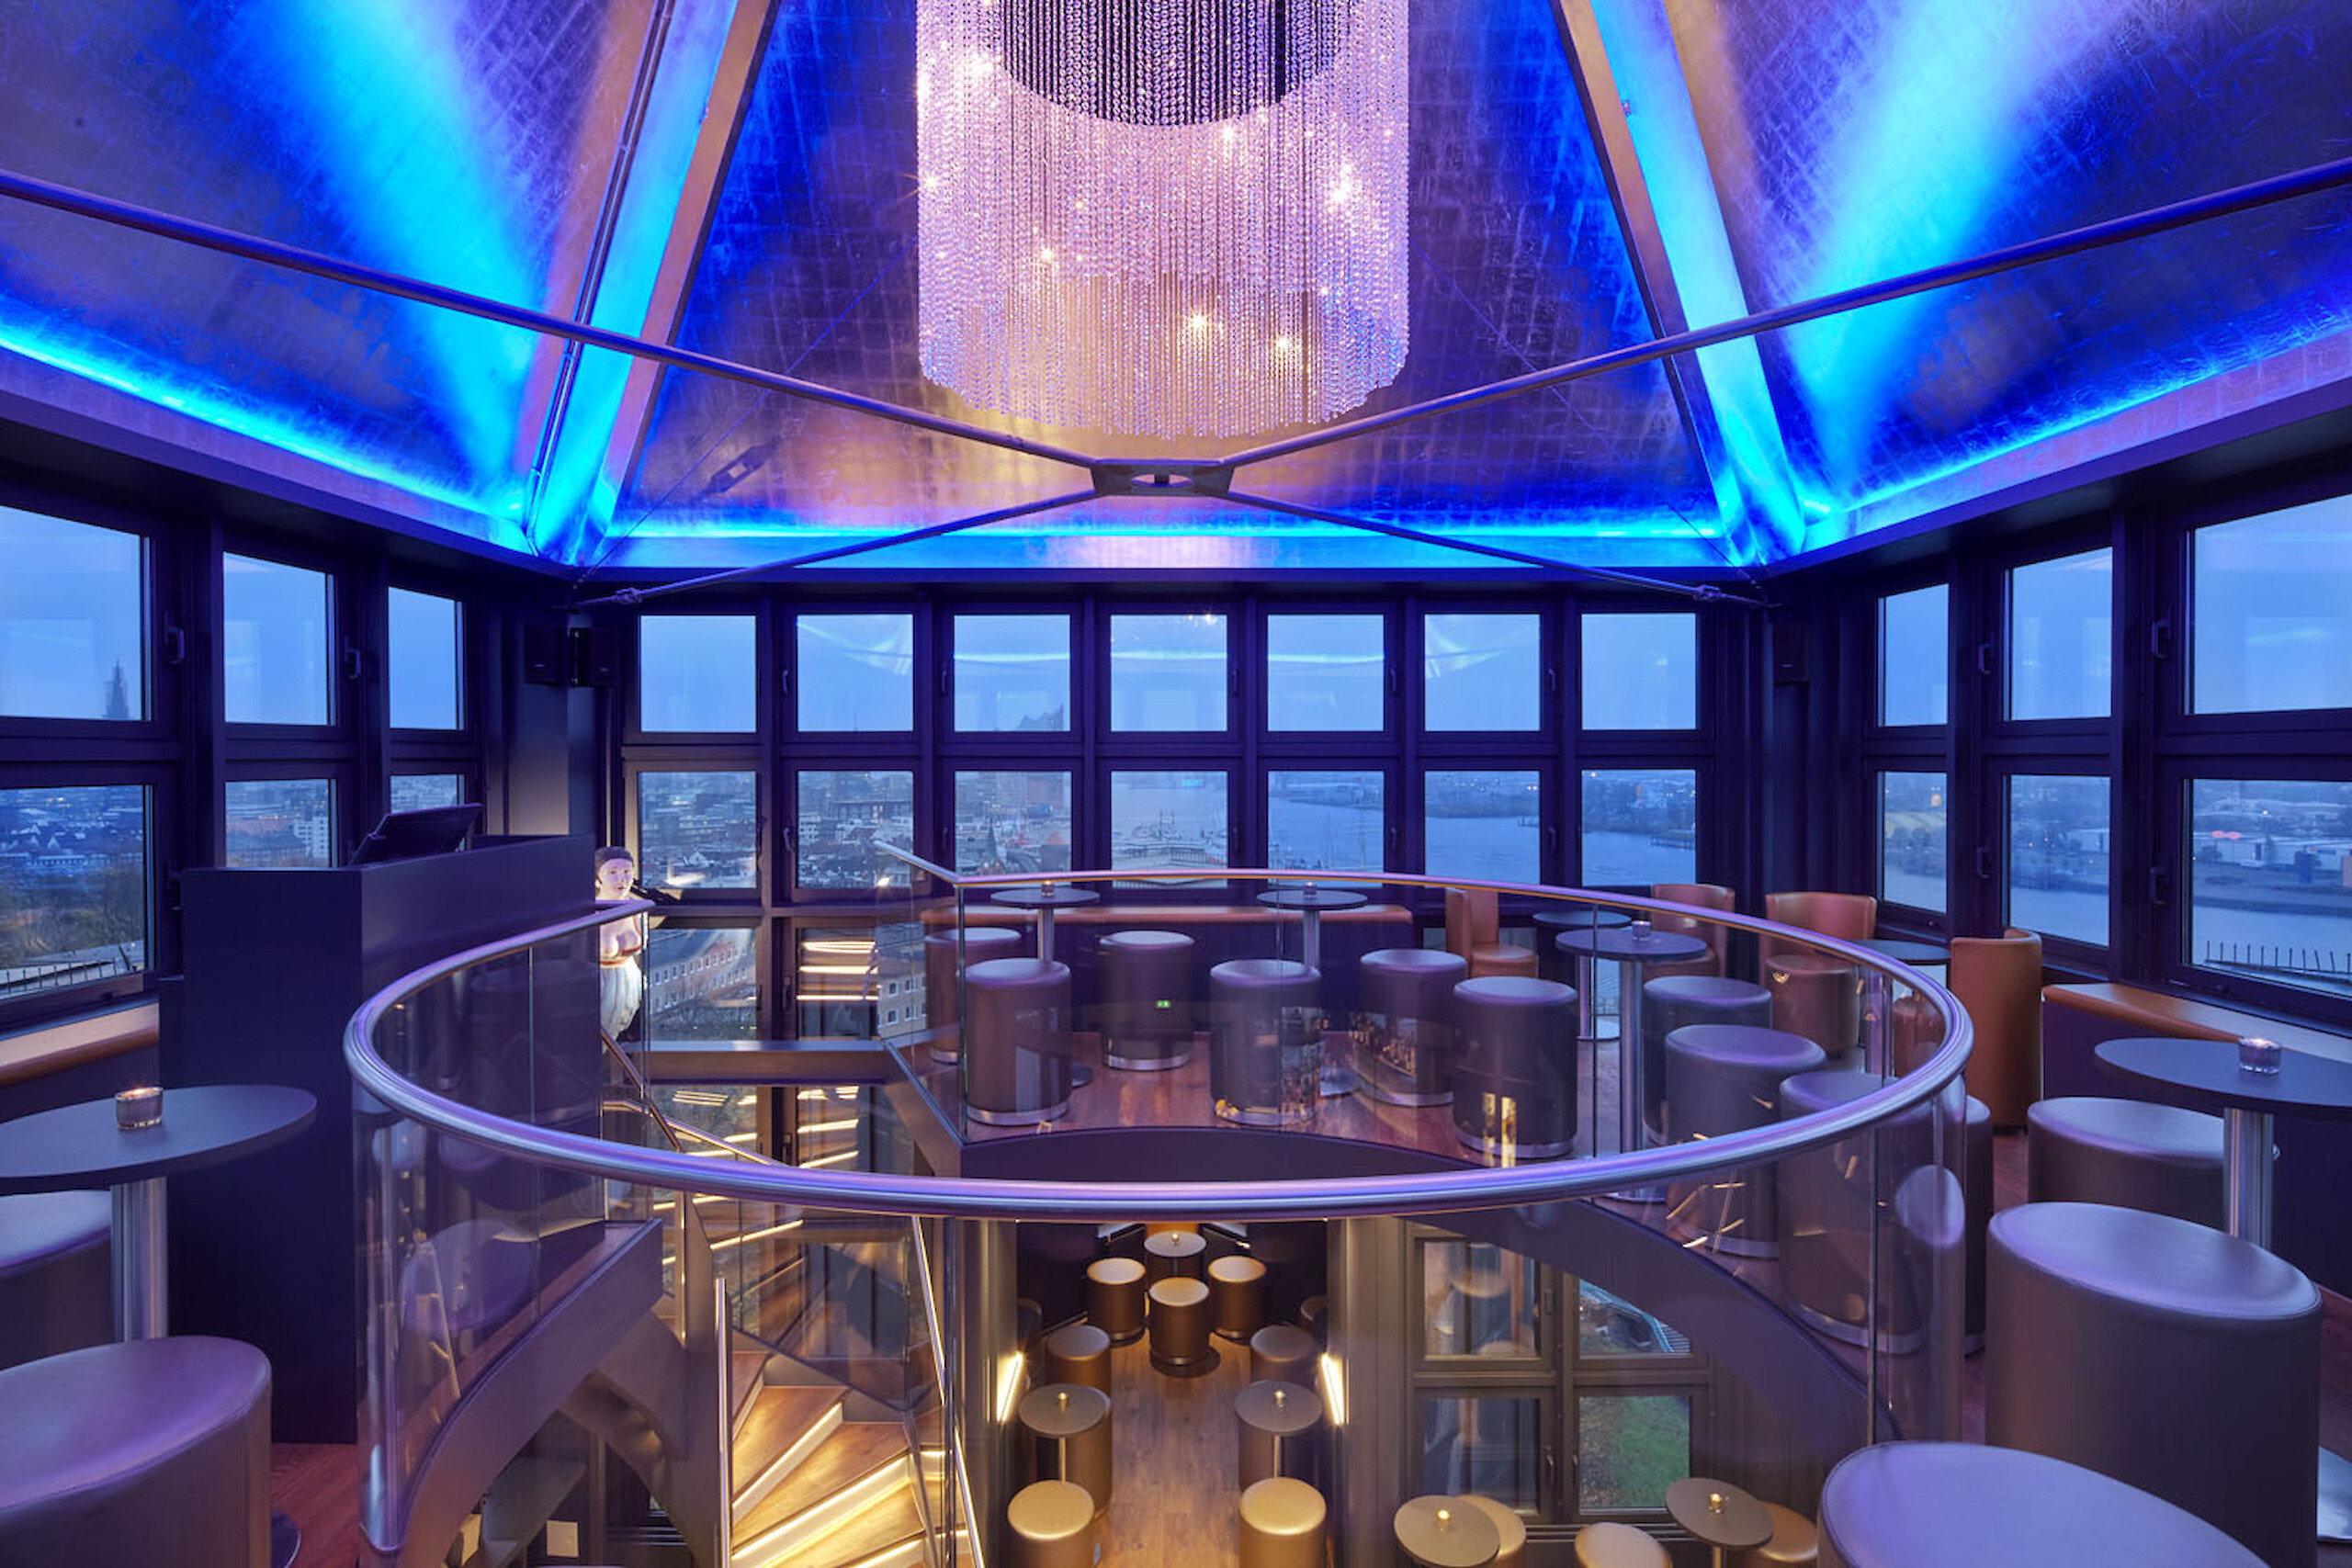 The Tower Bar with a view across the harbor and the Elbphilharmonie